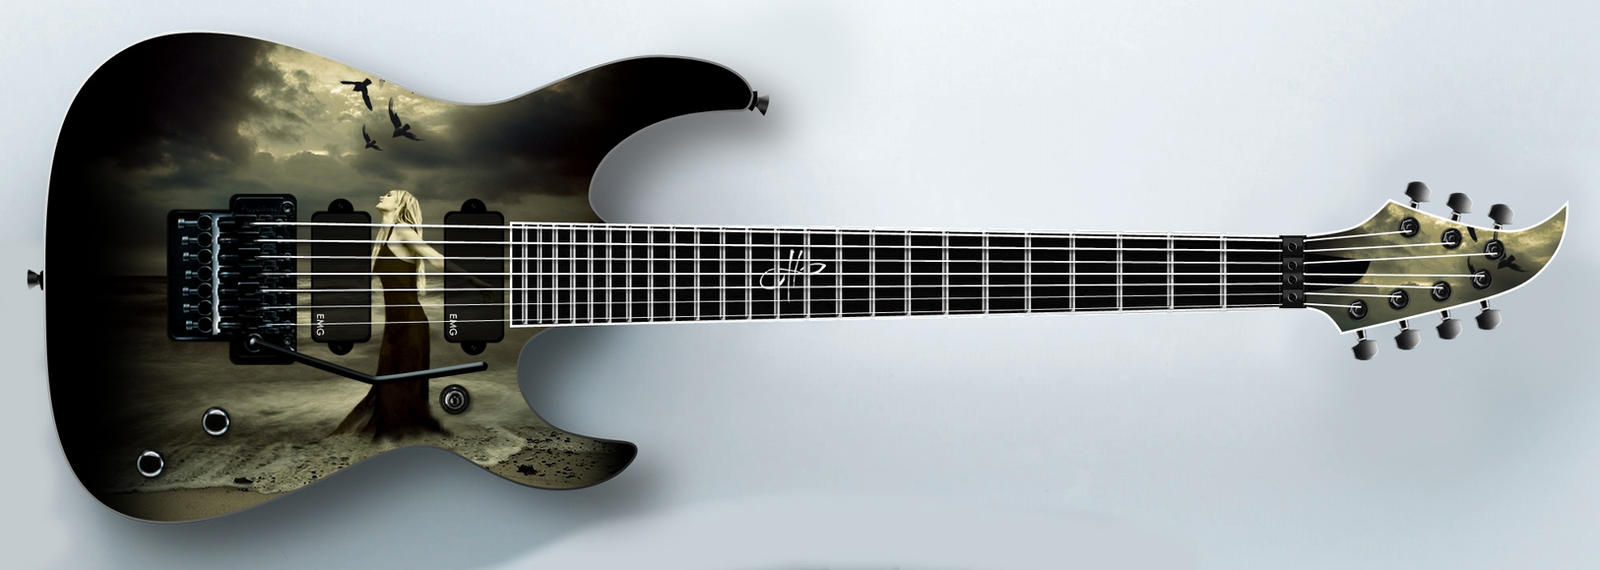 Artwork Guitar design 2 by Chatterly